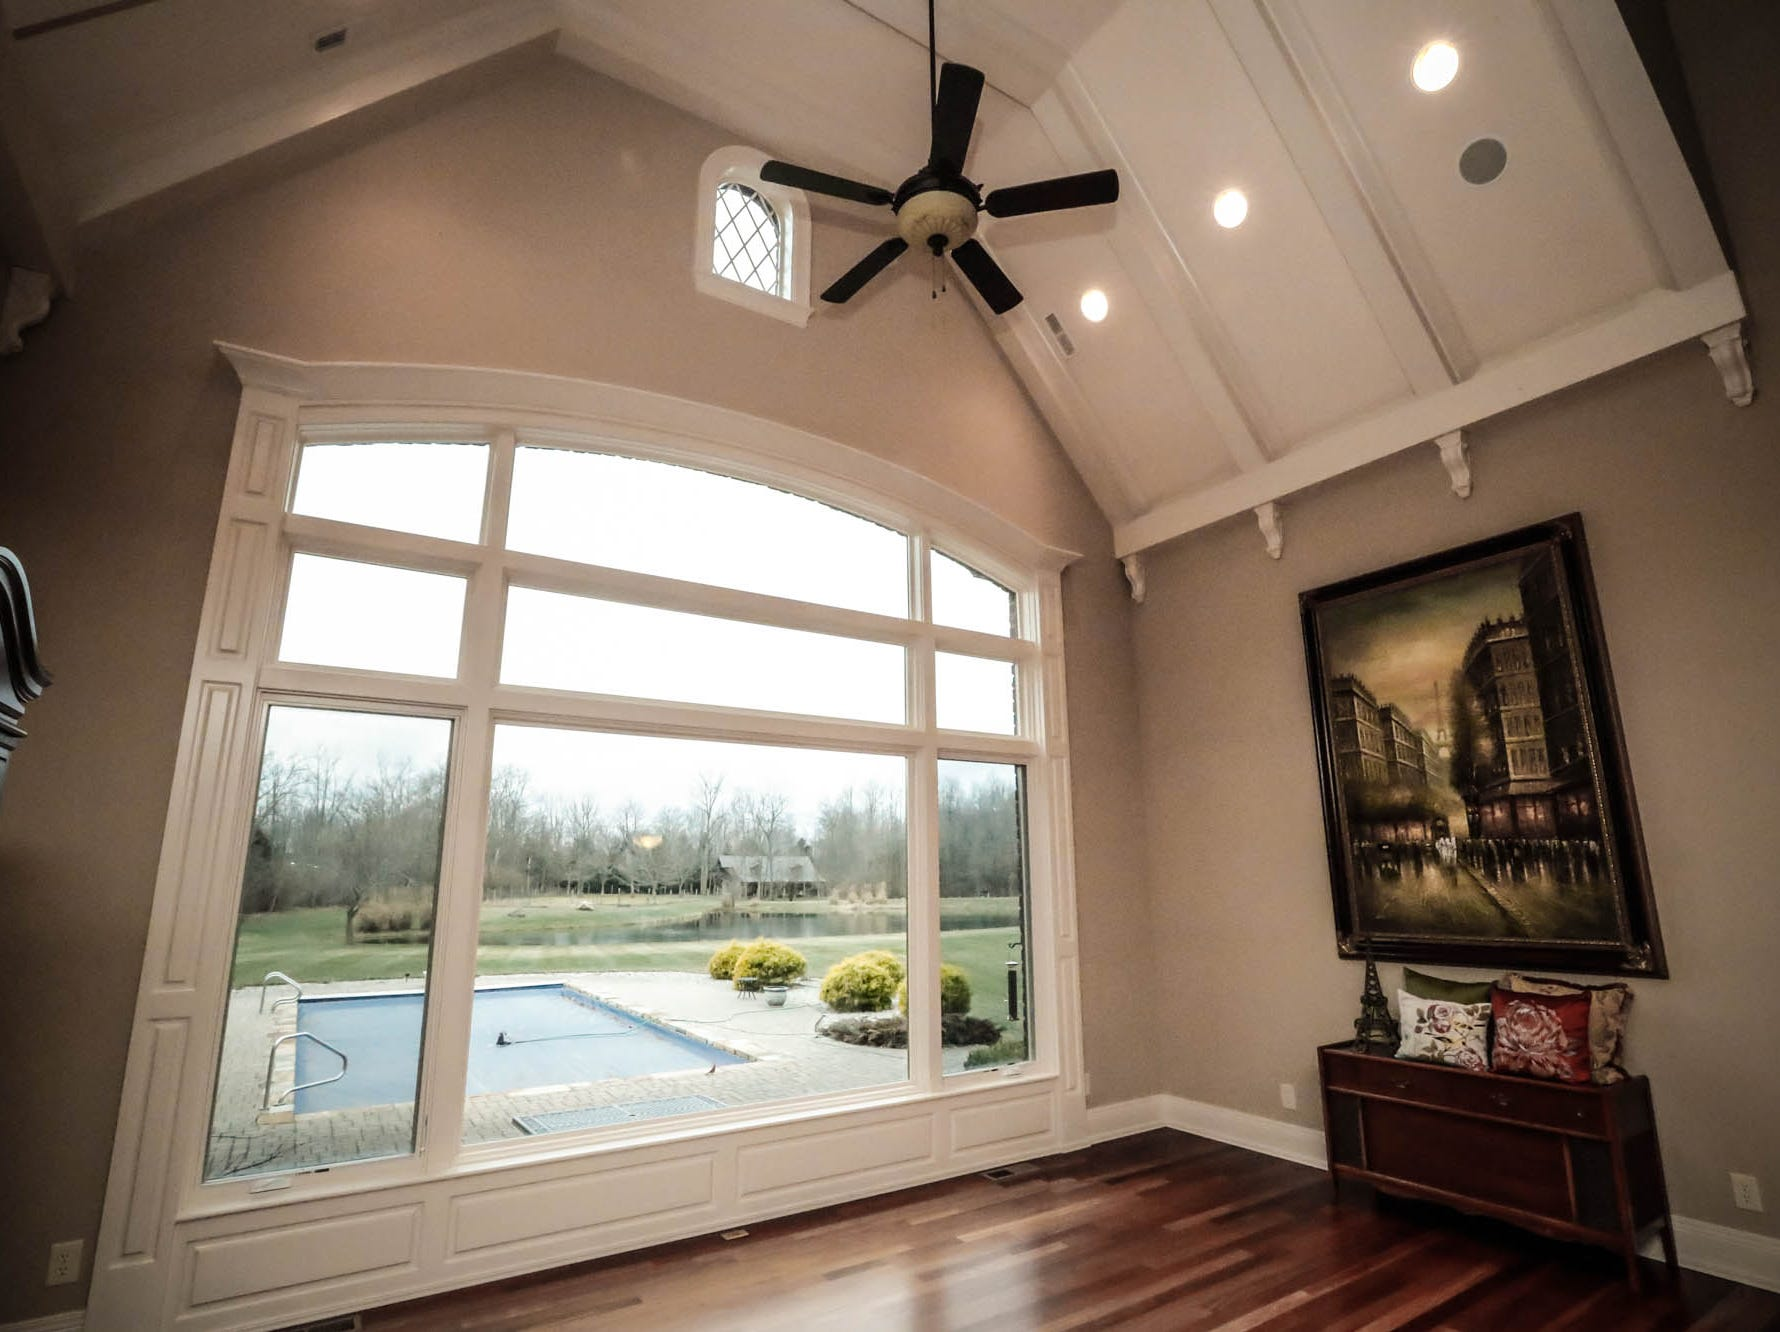 A large picture window overlooks an in-ground pool in a traditional $2m home with elements of French country and Tuscan influence up for sale in Bargersville Ind. on Wednesday, Jan. 9, 2019. The house sits on 8.1 acres.